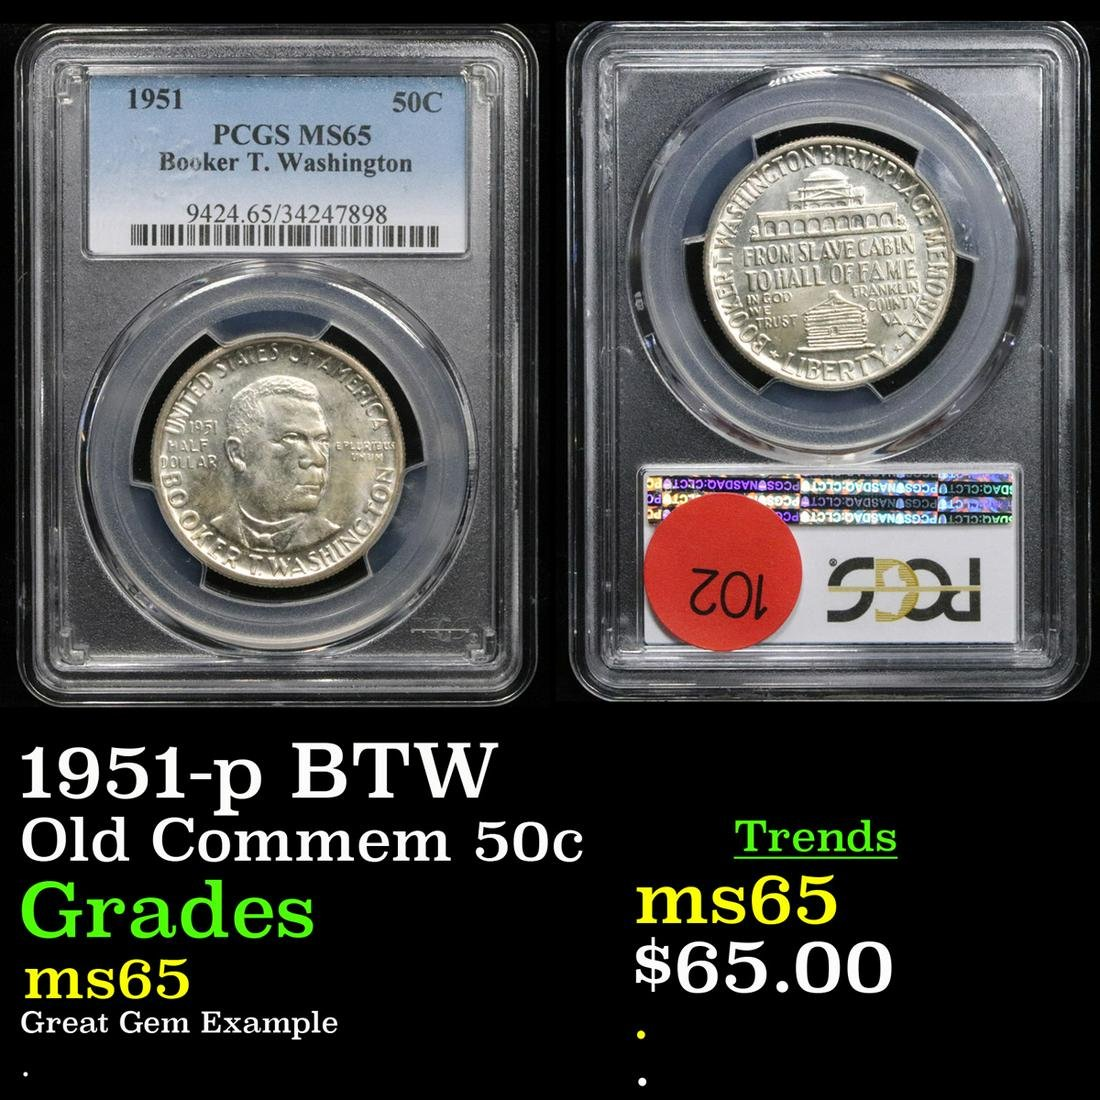 PCGS 1951-p BTW Old Commem Half Dollar 50c Graded ms65